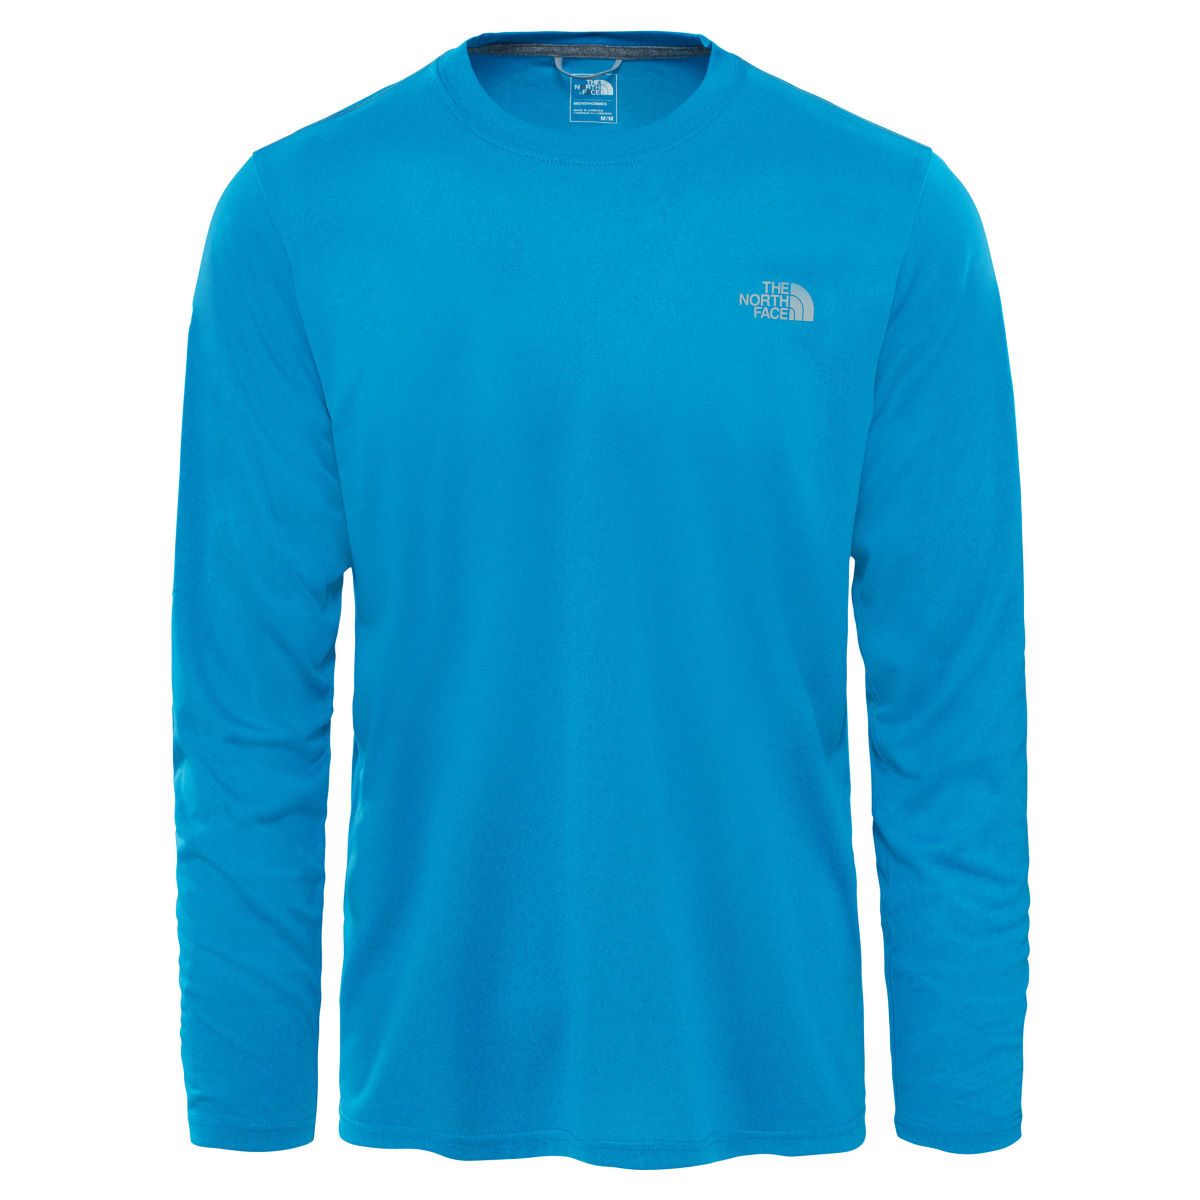 Maillot The North Face Reaxion Amp (manches longues, col rond) - S